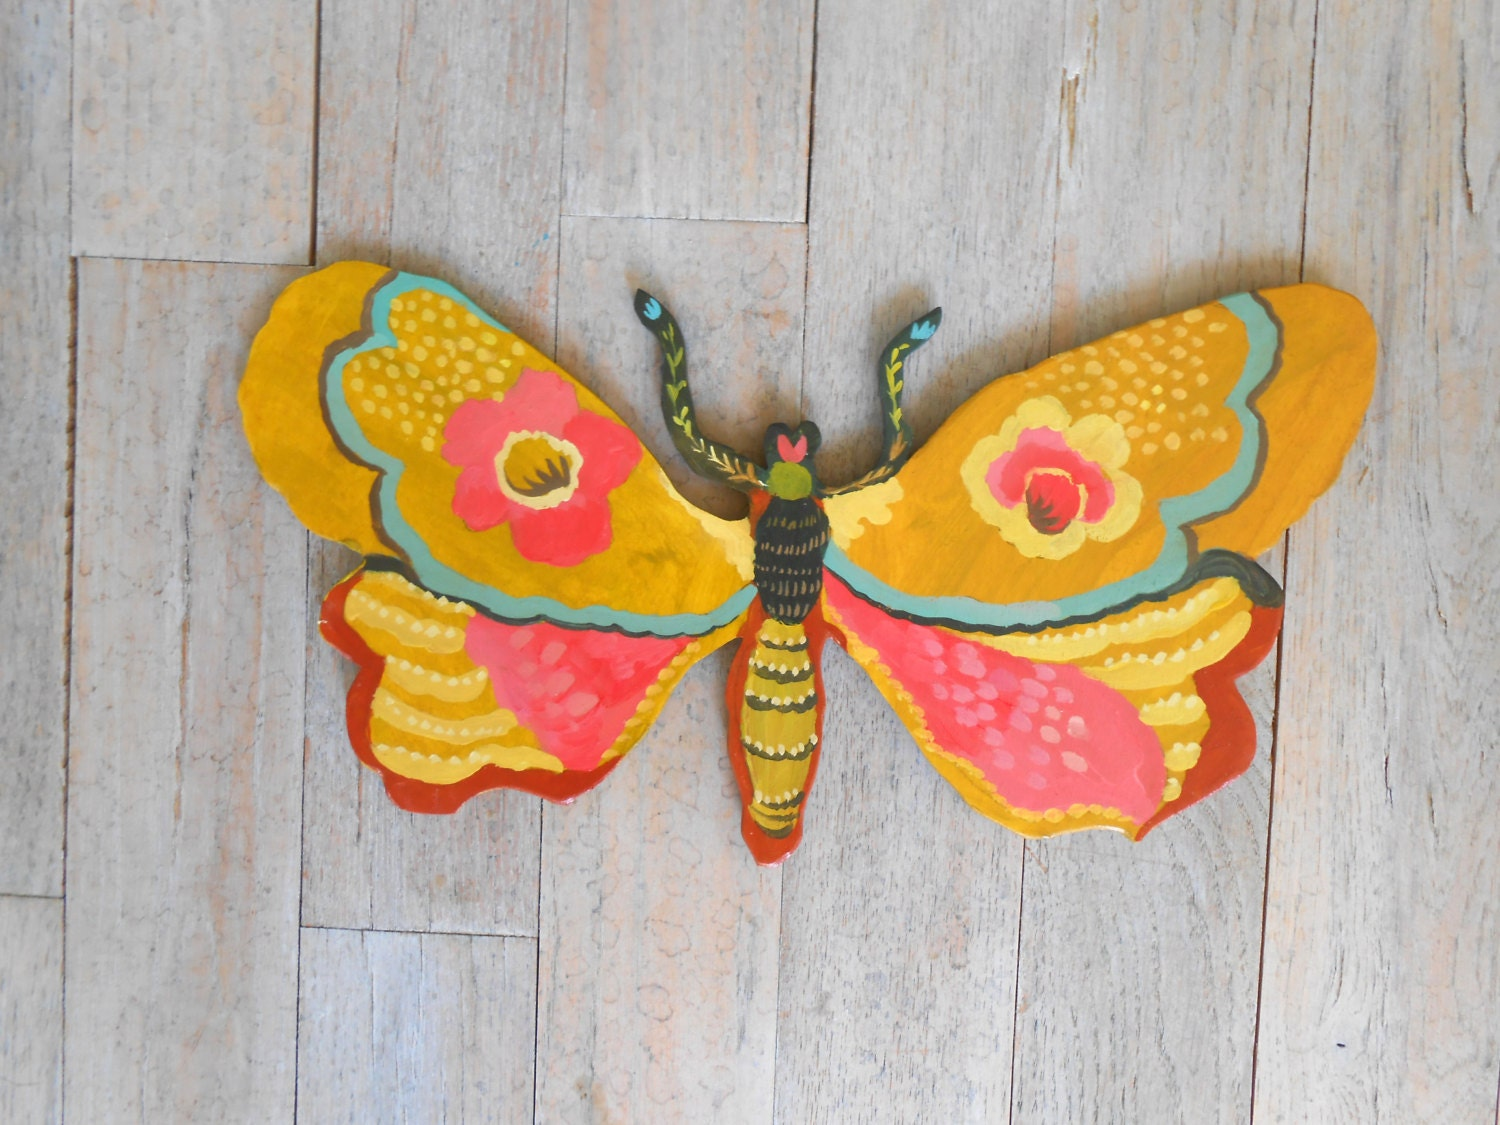 Joyful Moth Handpainted Wood Wall Sculpture by Kimberly Hodges ...